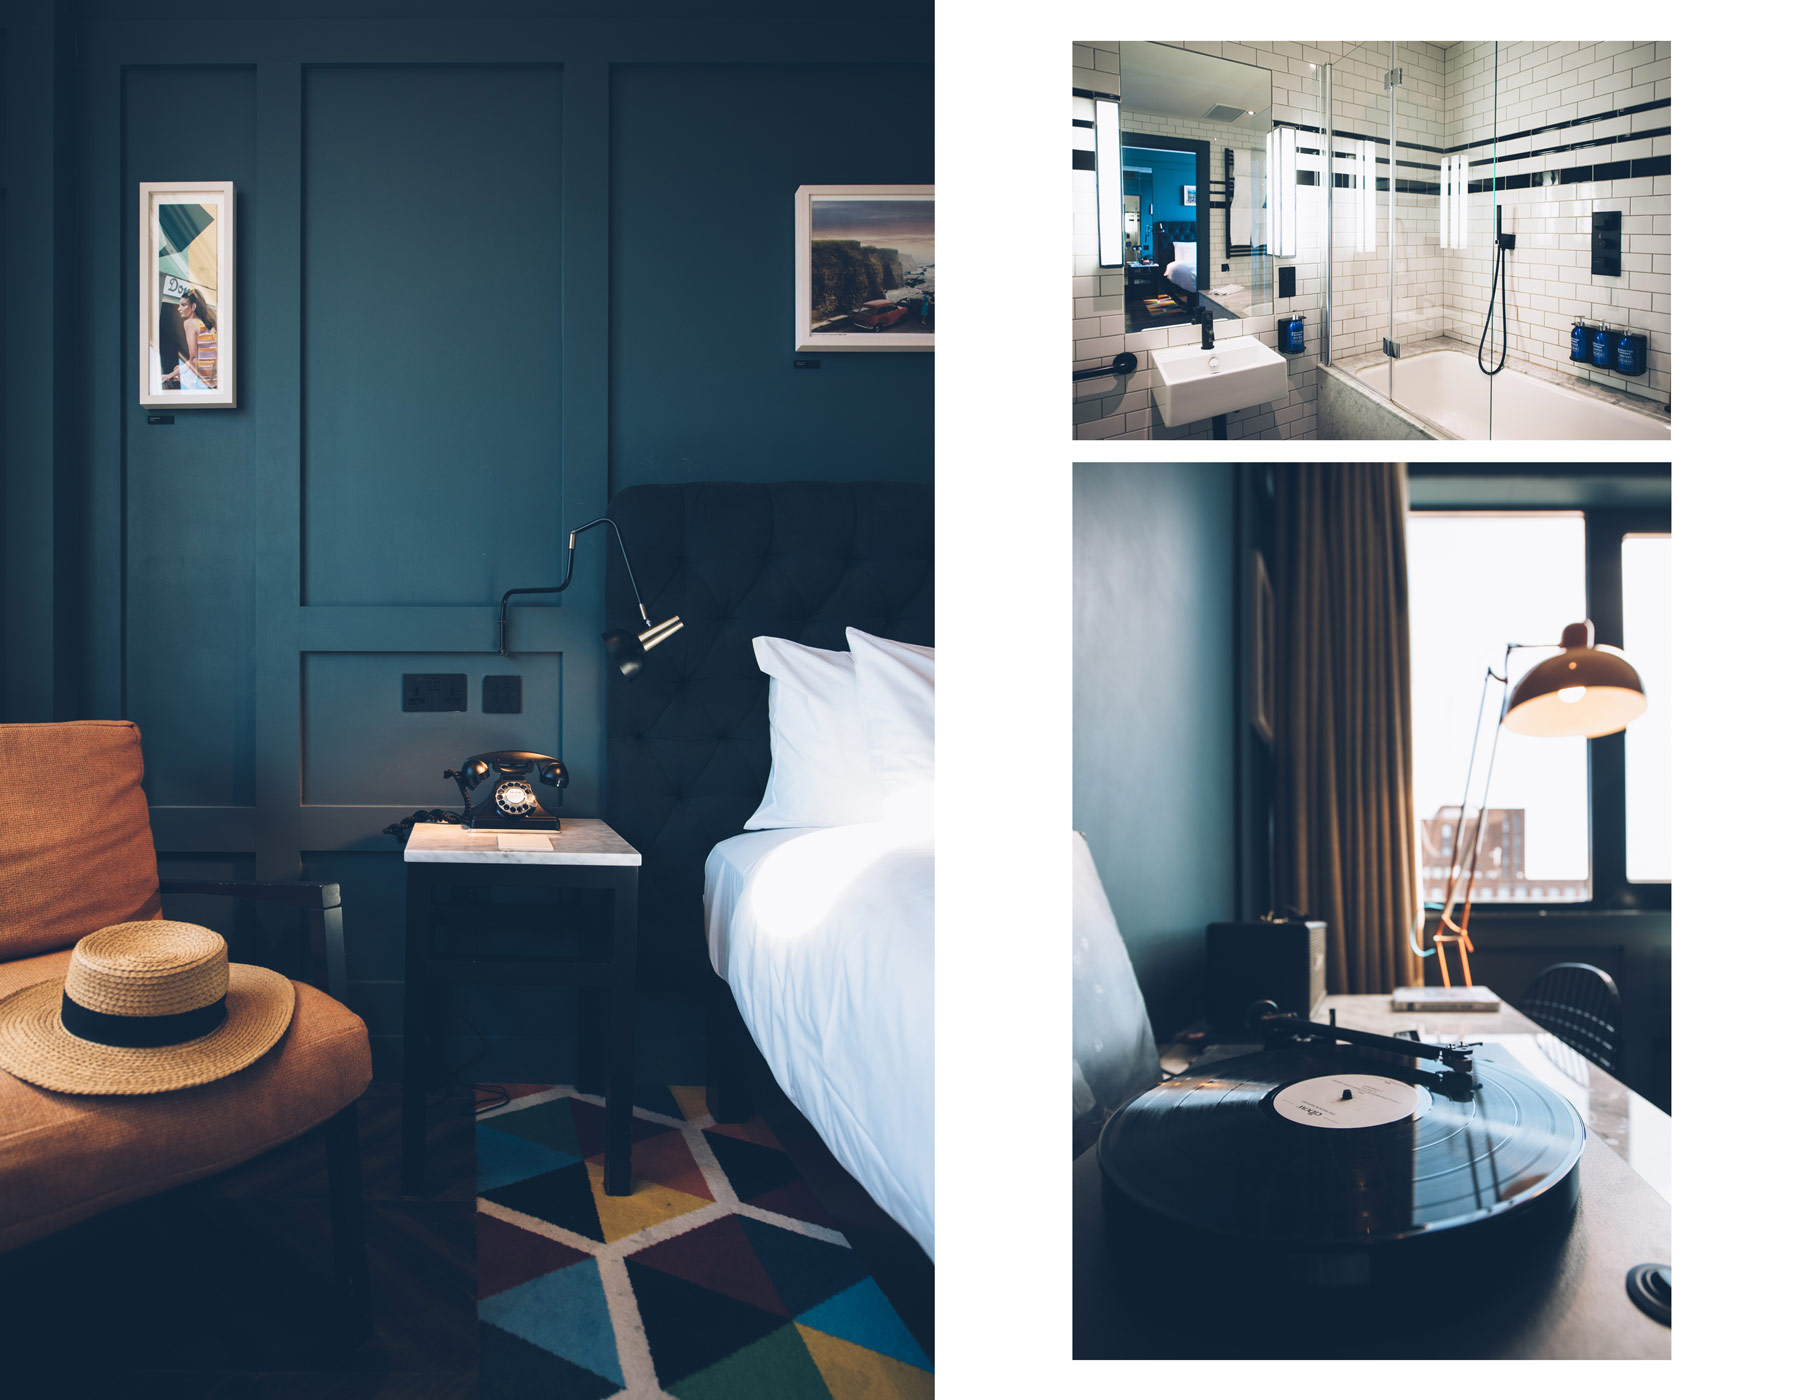 Hotel Design Dublin: The Dean